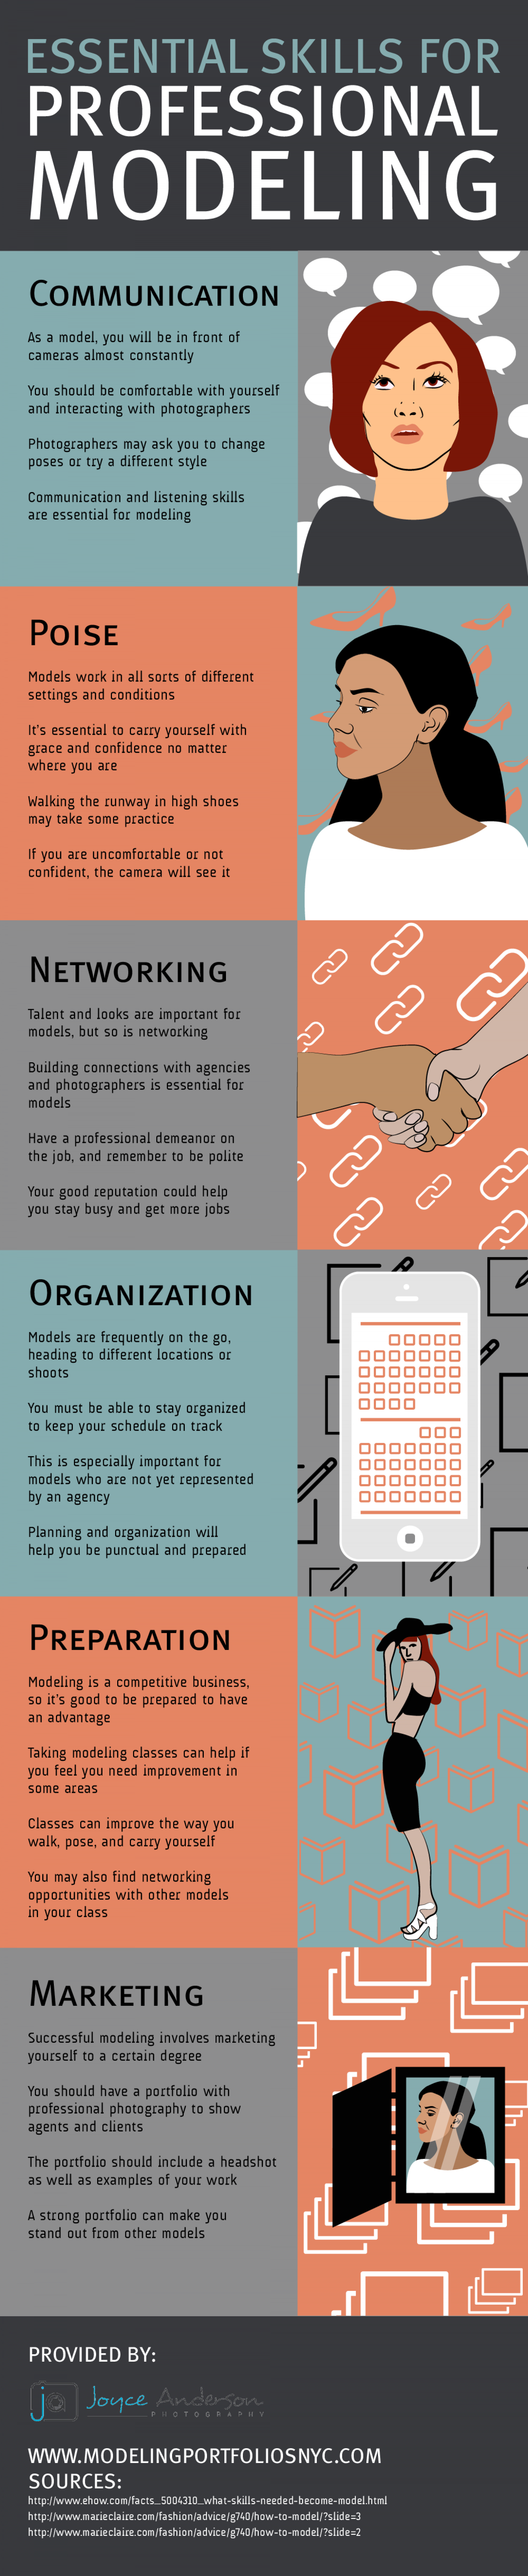 Essential Skills for Professional Modeling Infographic